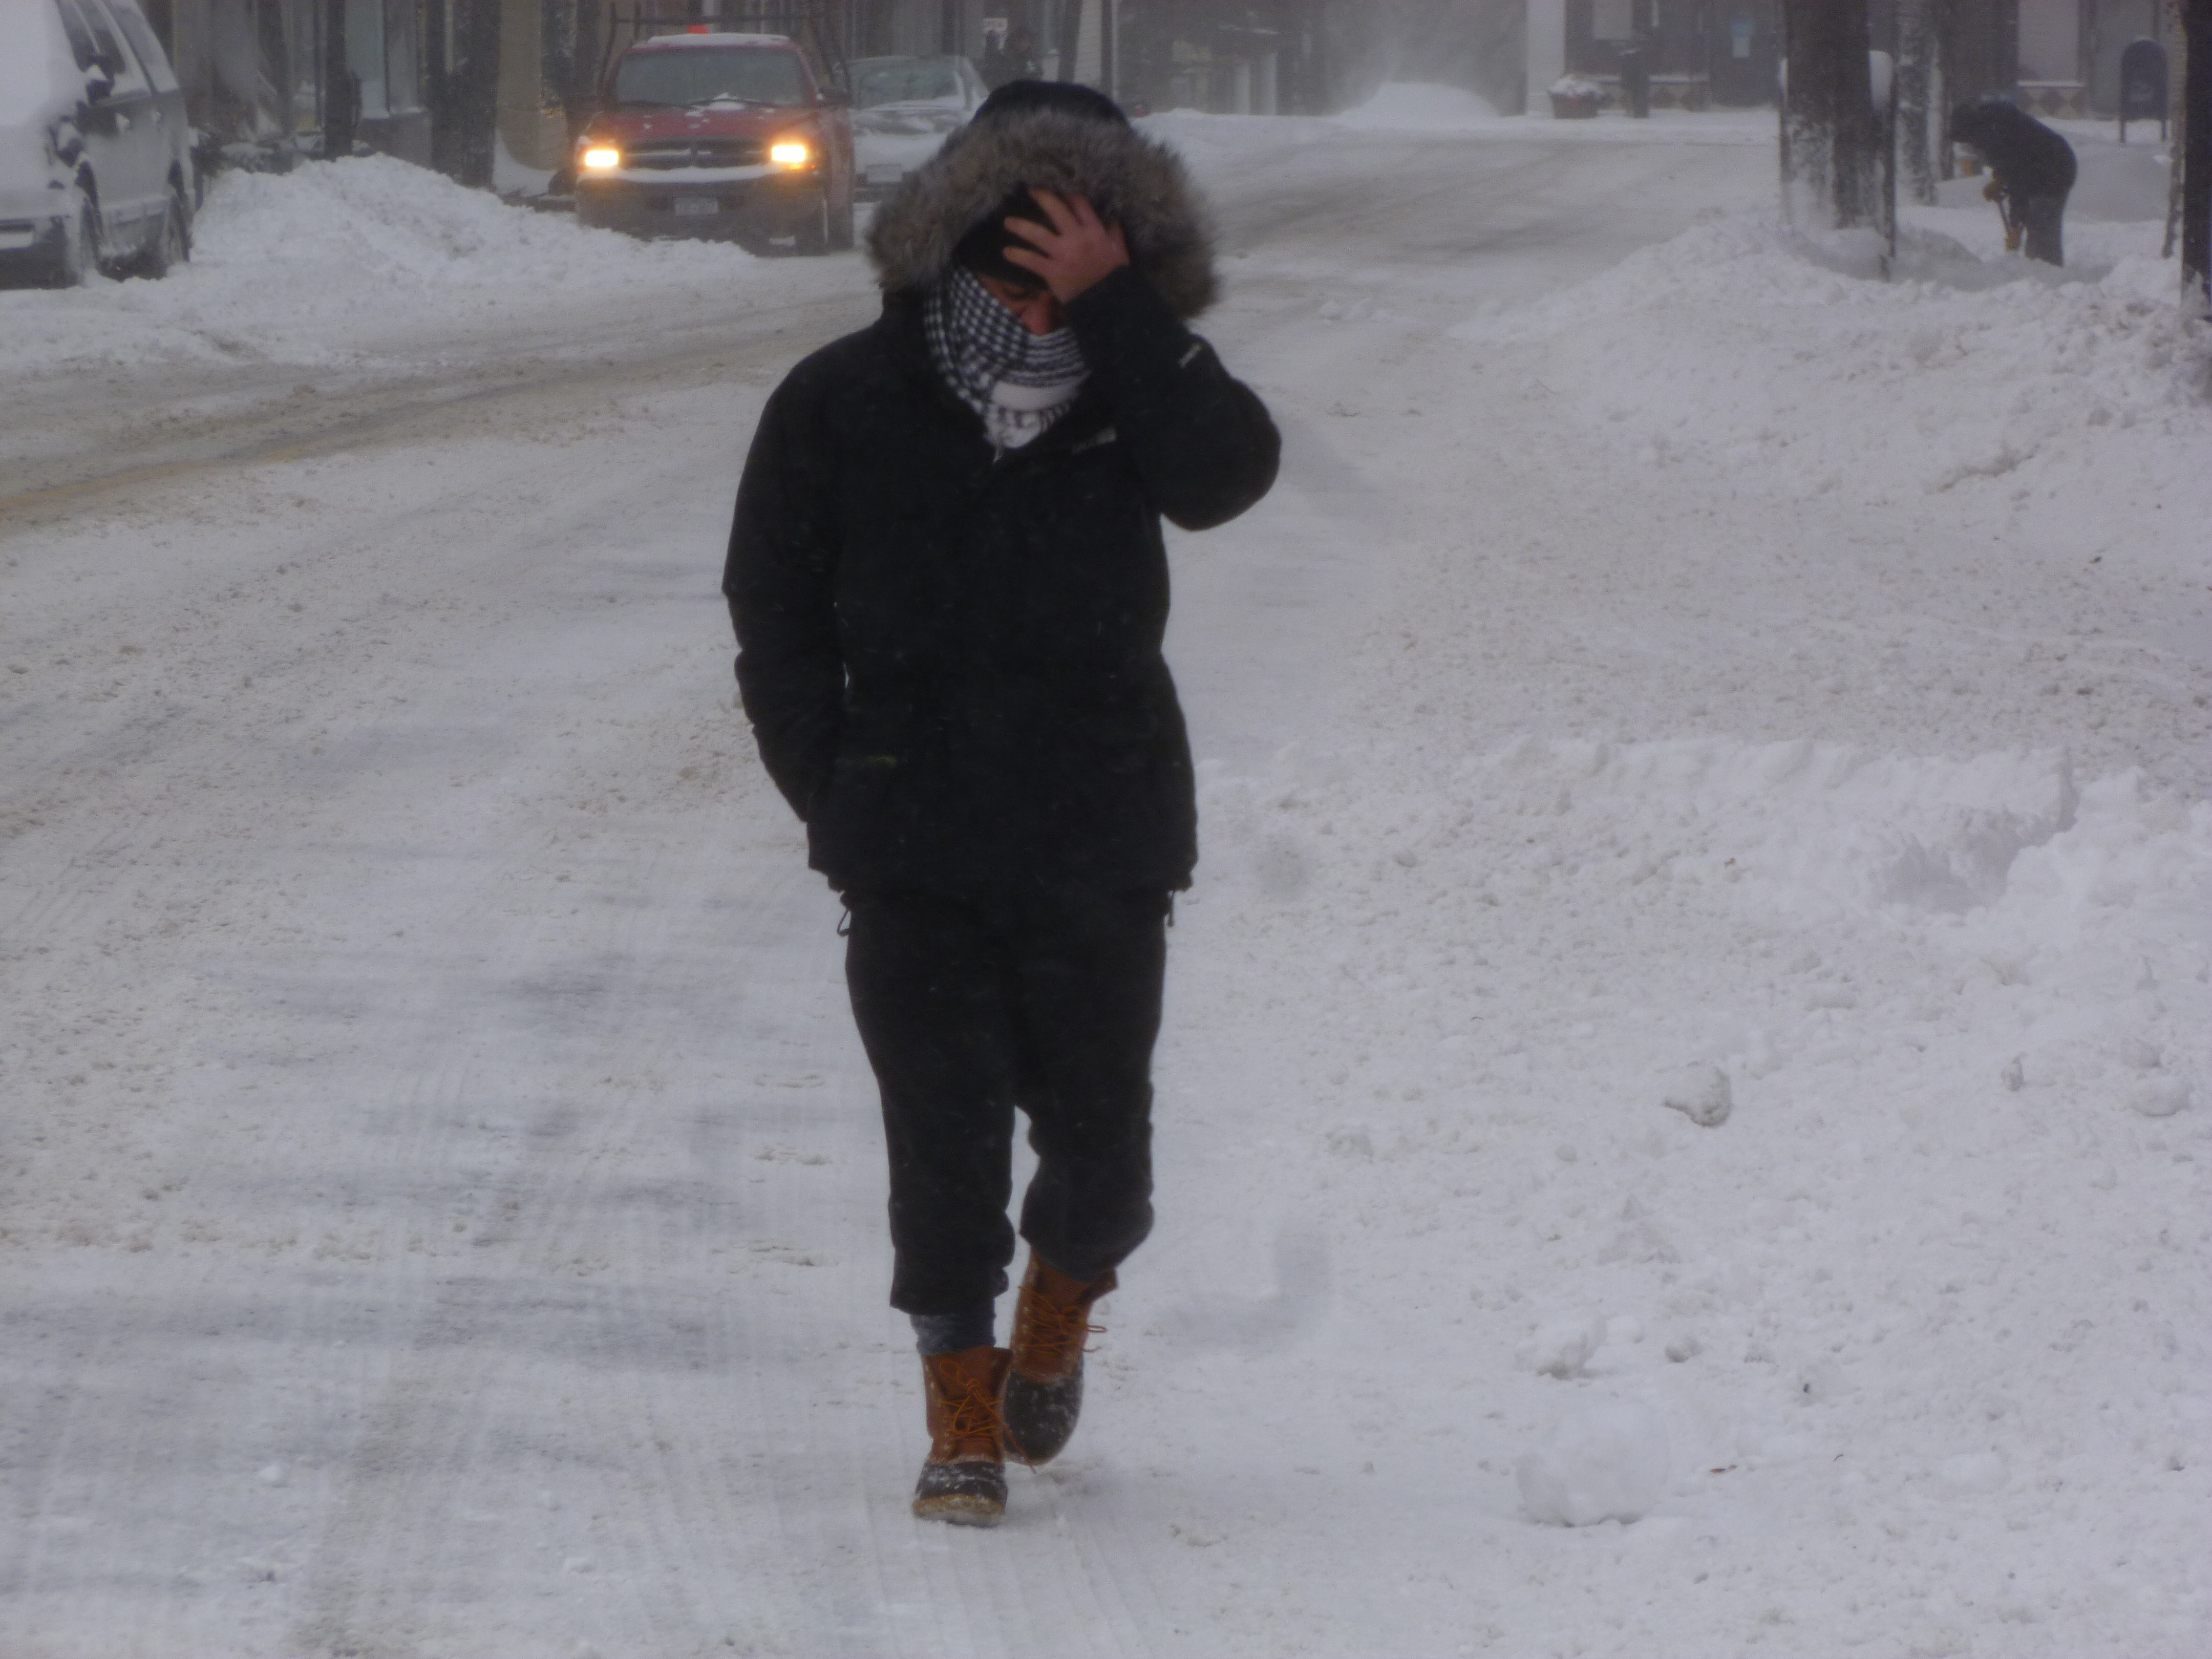 Getting around by car, bus, train or on foot has been a challenge in the Westchester winter of 2013-2014.